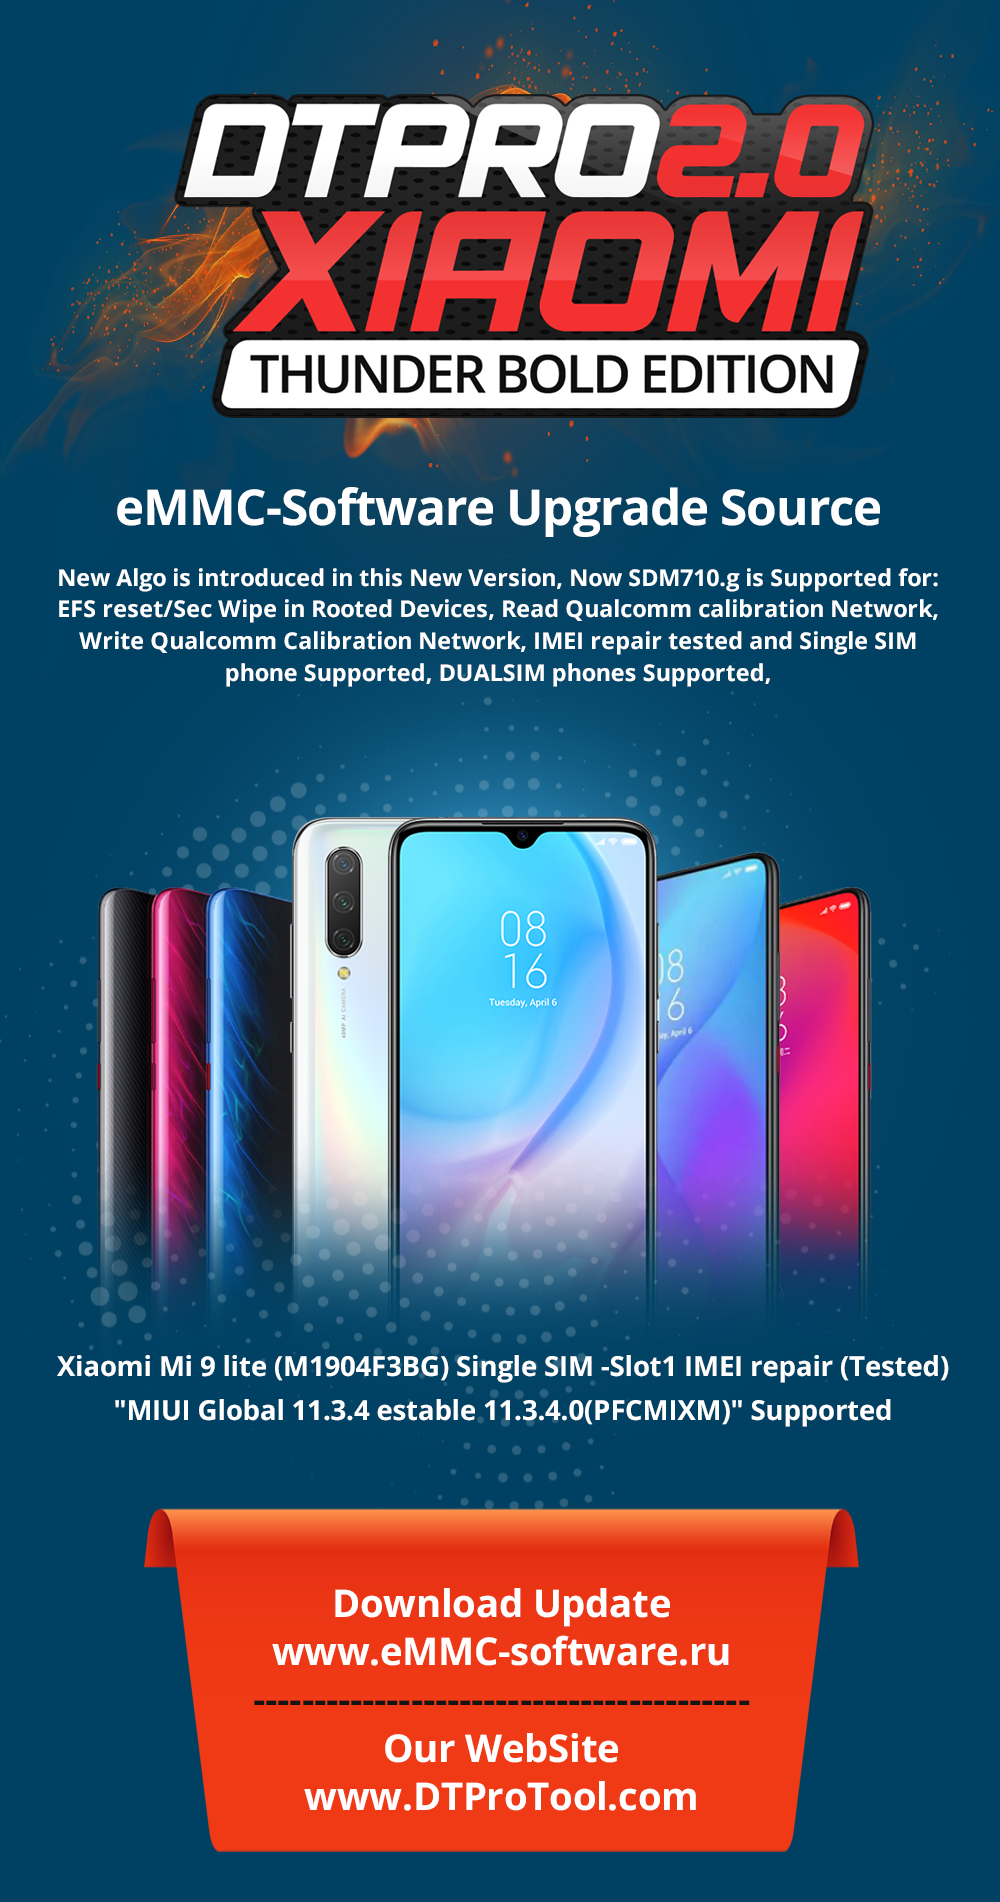 DT QUALCOMM -eMMC Software V1.0.080809 Thunder Bold Edition!! Xiaomi DualSIM Imei repair for Hot New Models & More